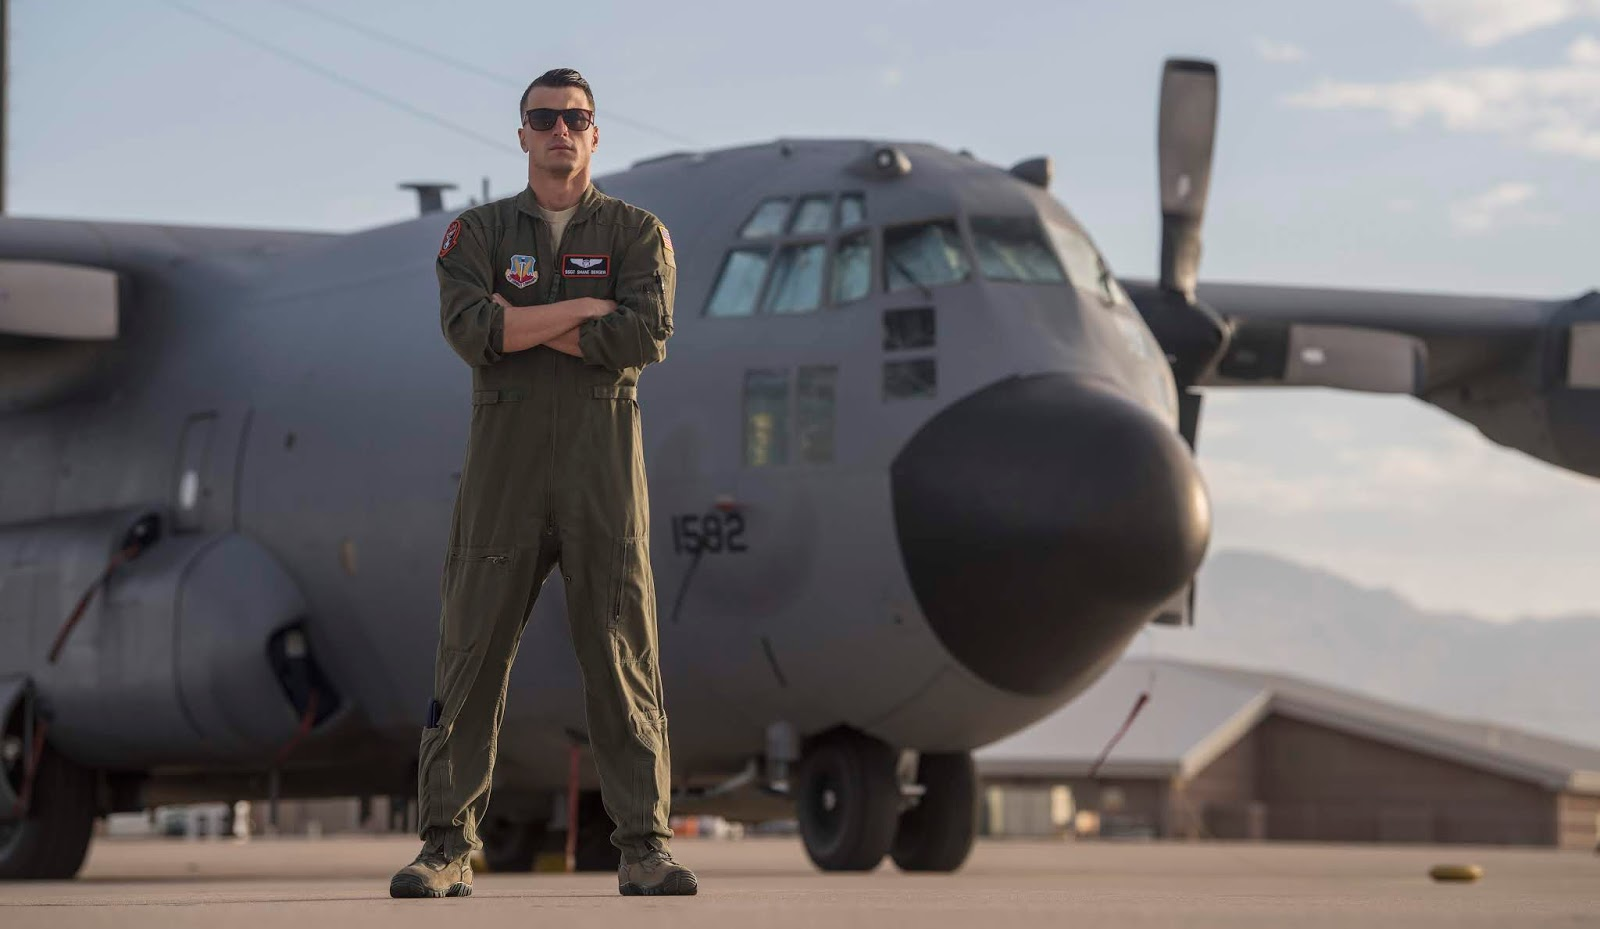 Air Force airman standing in front of a plane